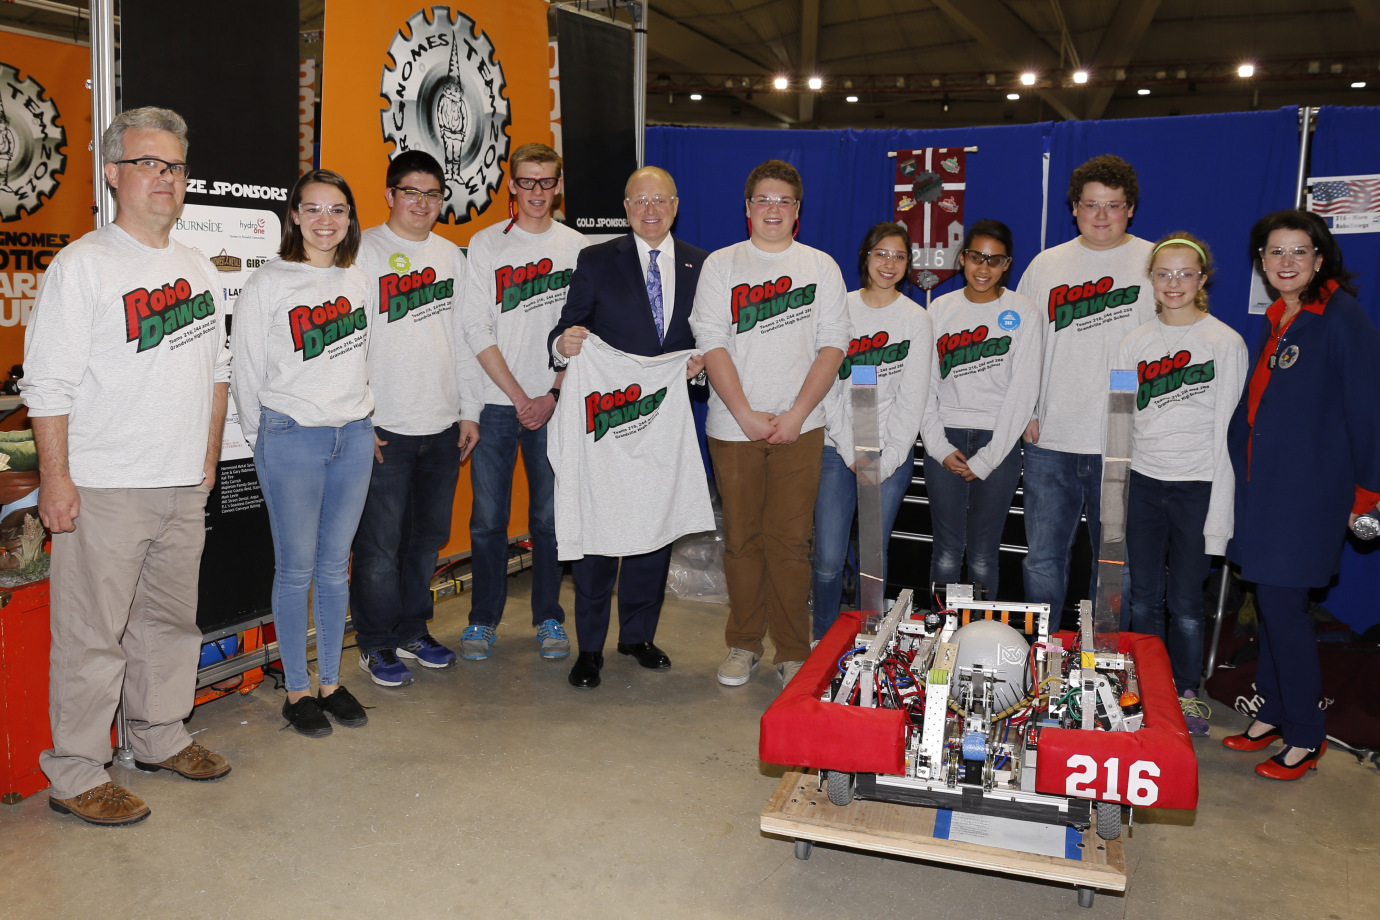 Meeting US Ambassador to Canada in Calgary at FRC Western Regional Championship.